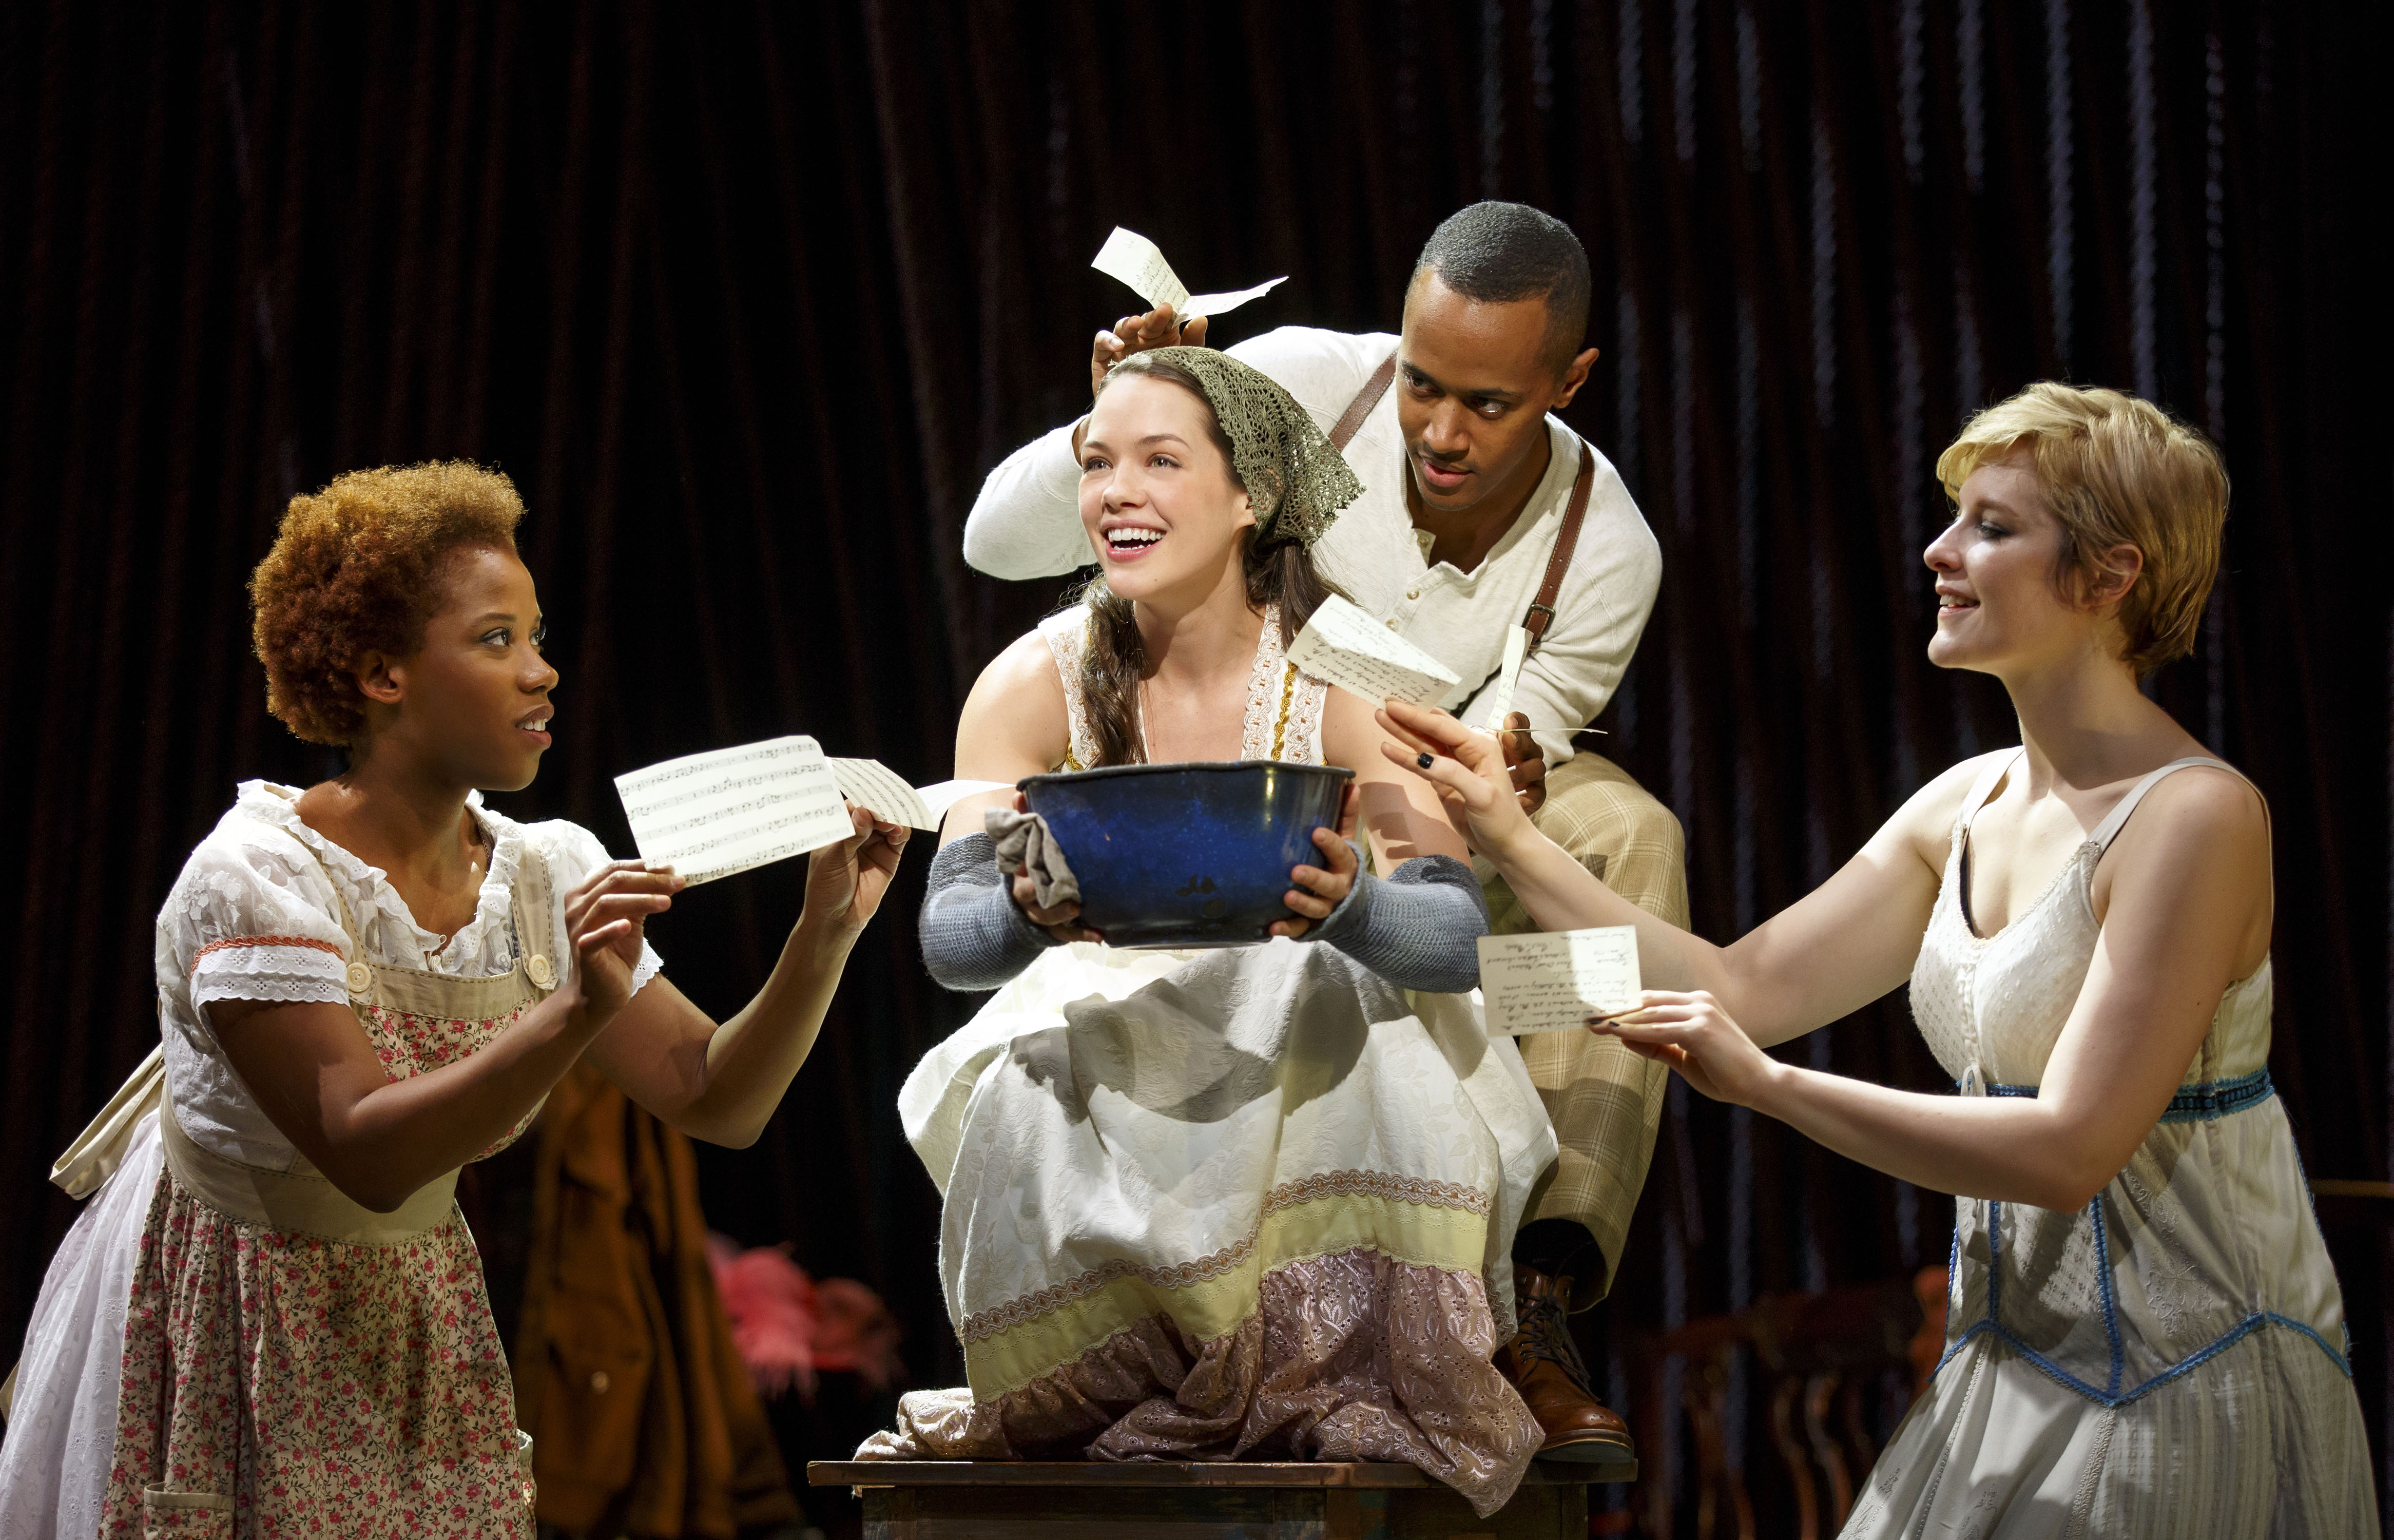 """AHMANSON THEATRE TO THROW CAST PARTY SATURDAY, MAY 13 FOR ALL """"INTO THE WOODS"""" ACTORS FROM ANY PRODUCTION"""